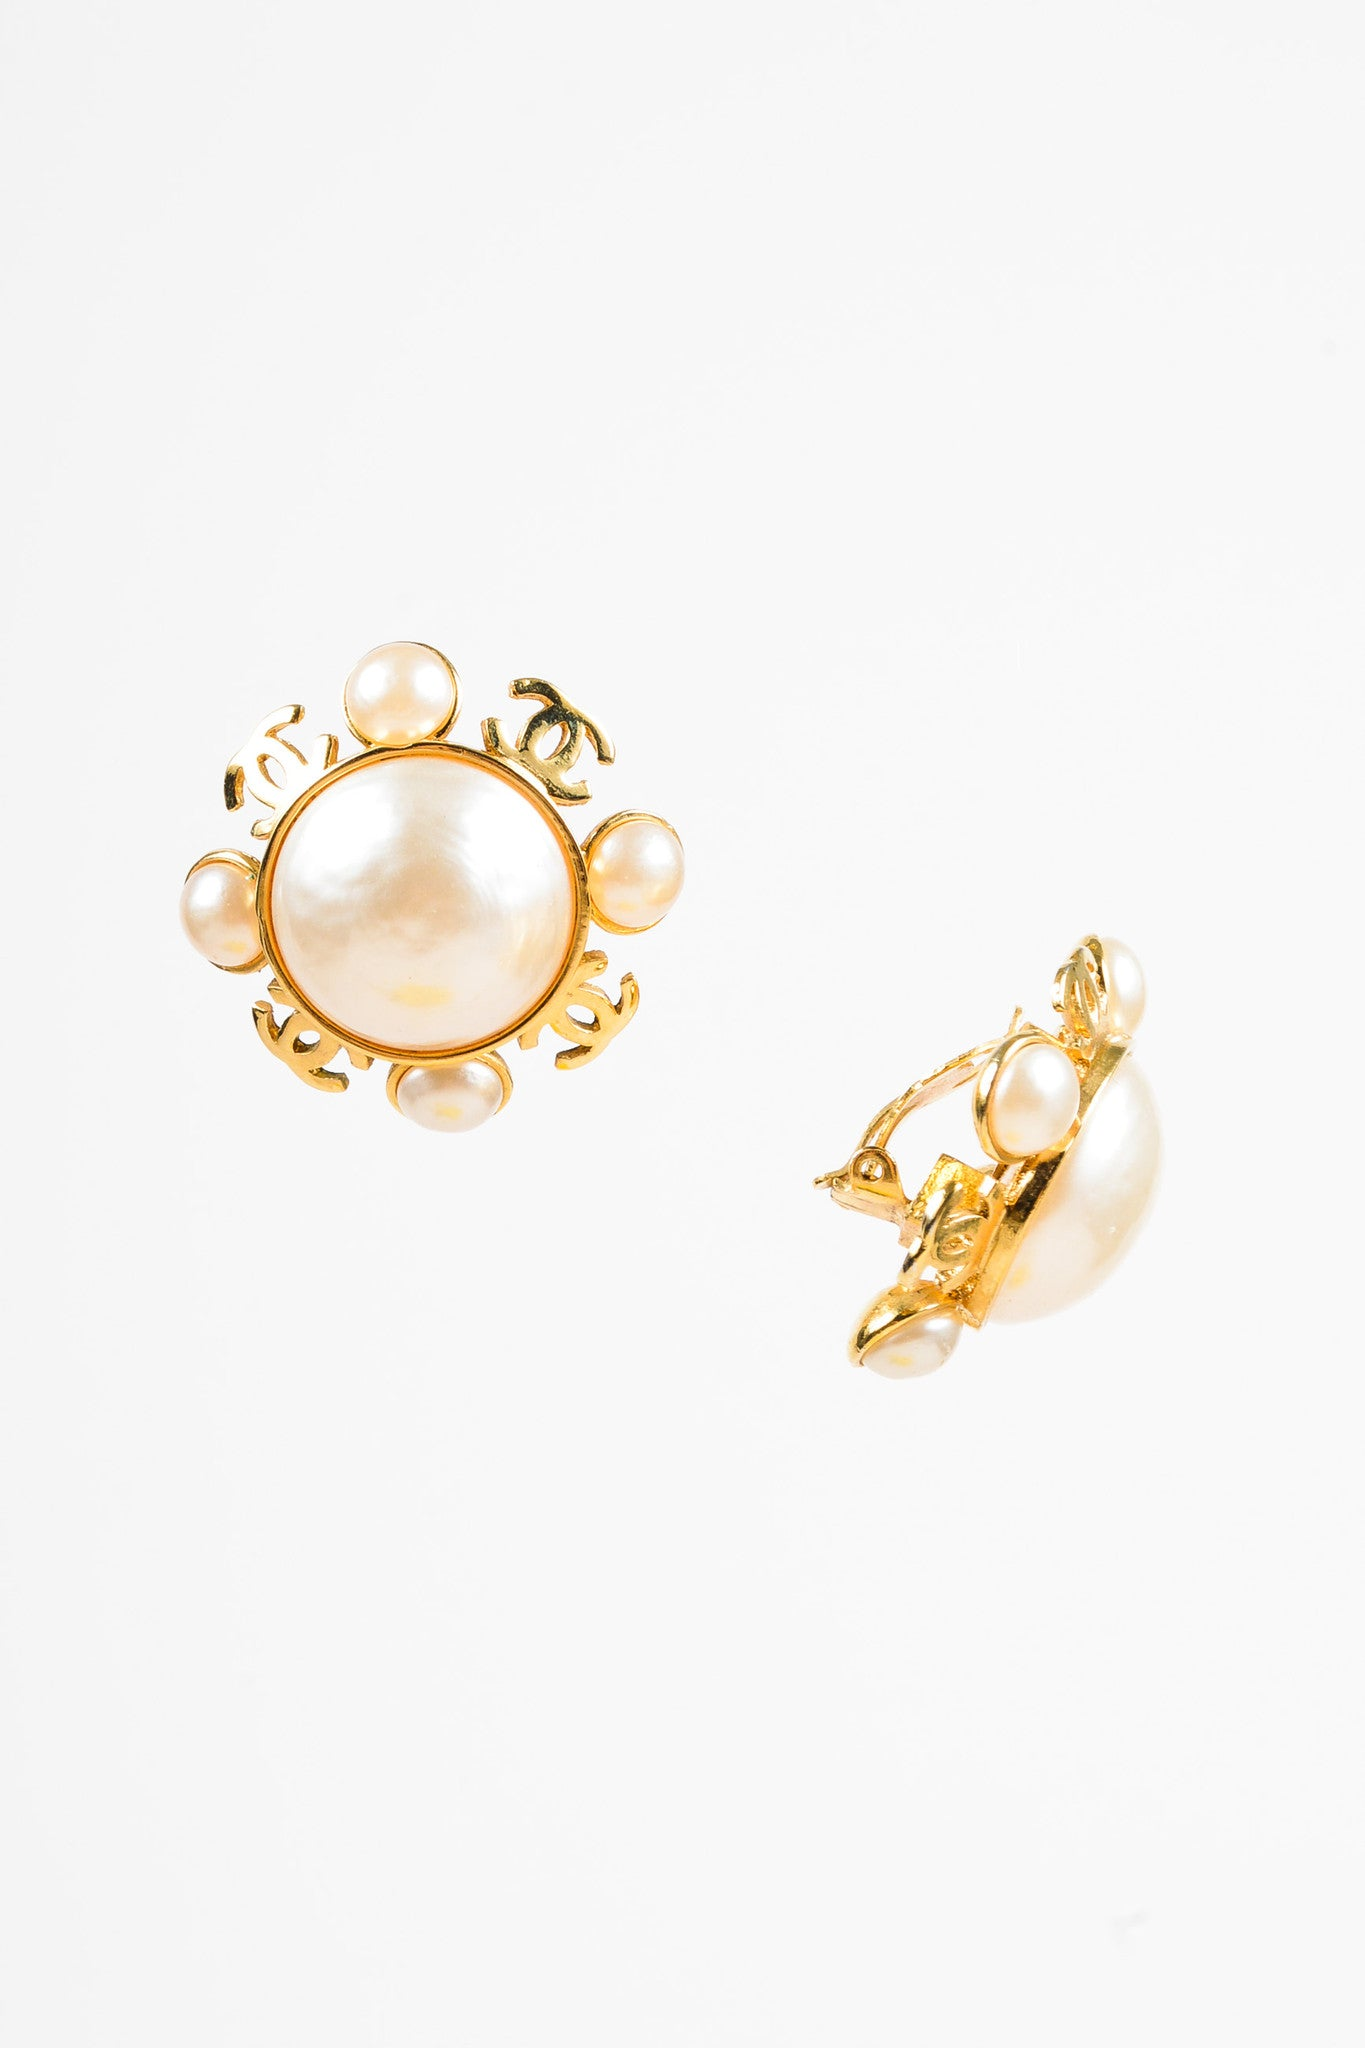 Chanel Gold Toned and Faux Pearl 'CC' Clip On Earrings Sideview